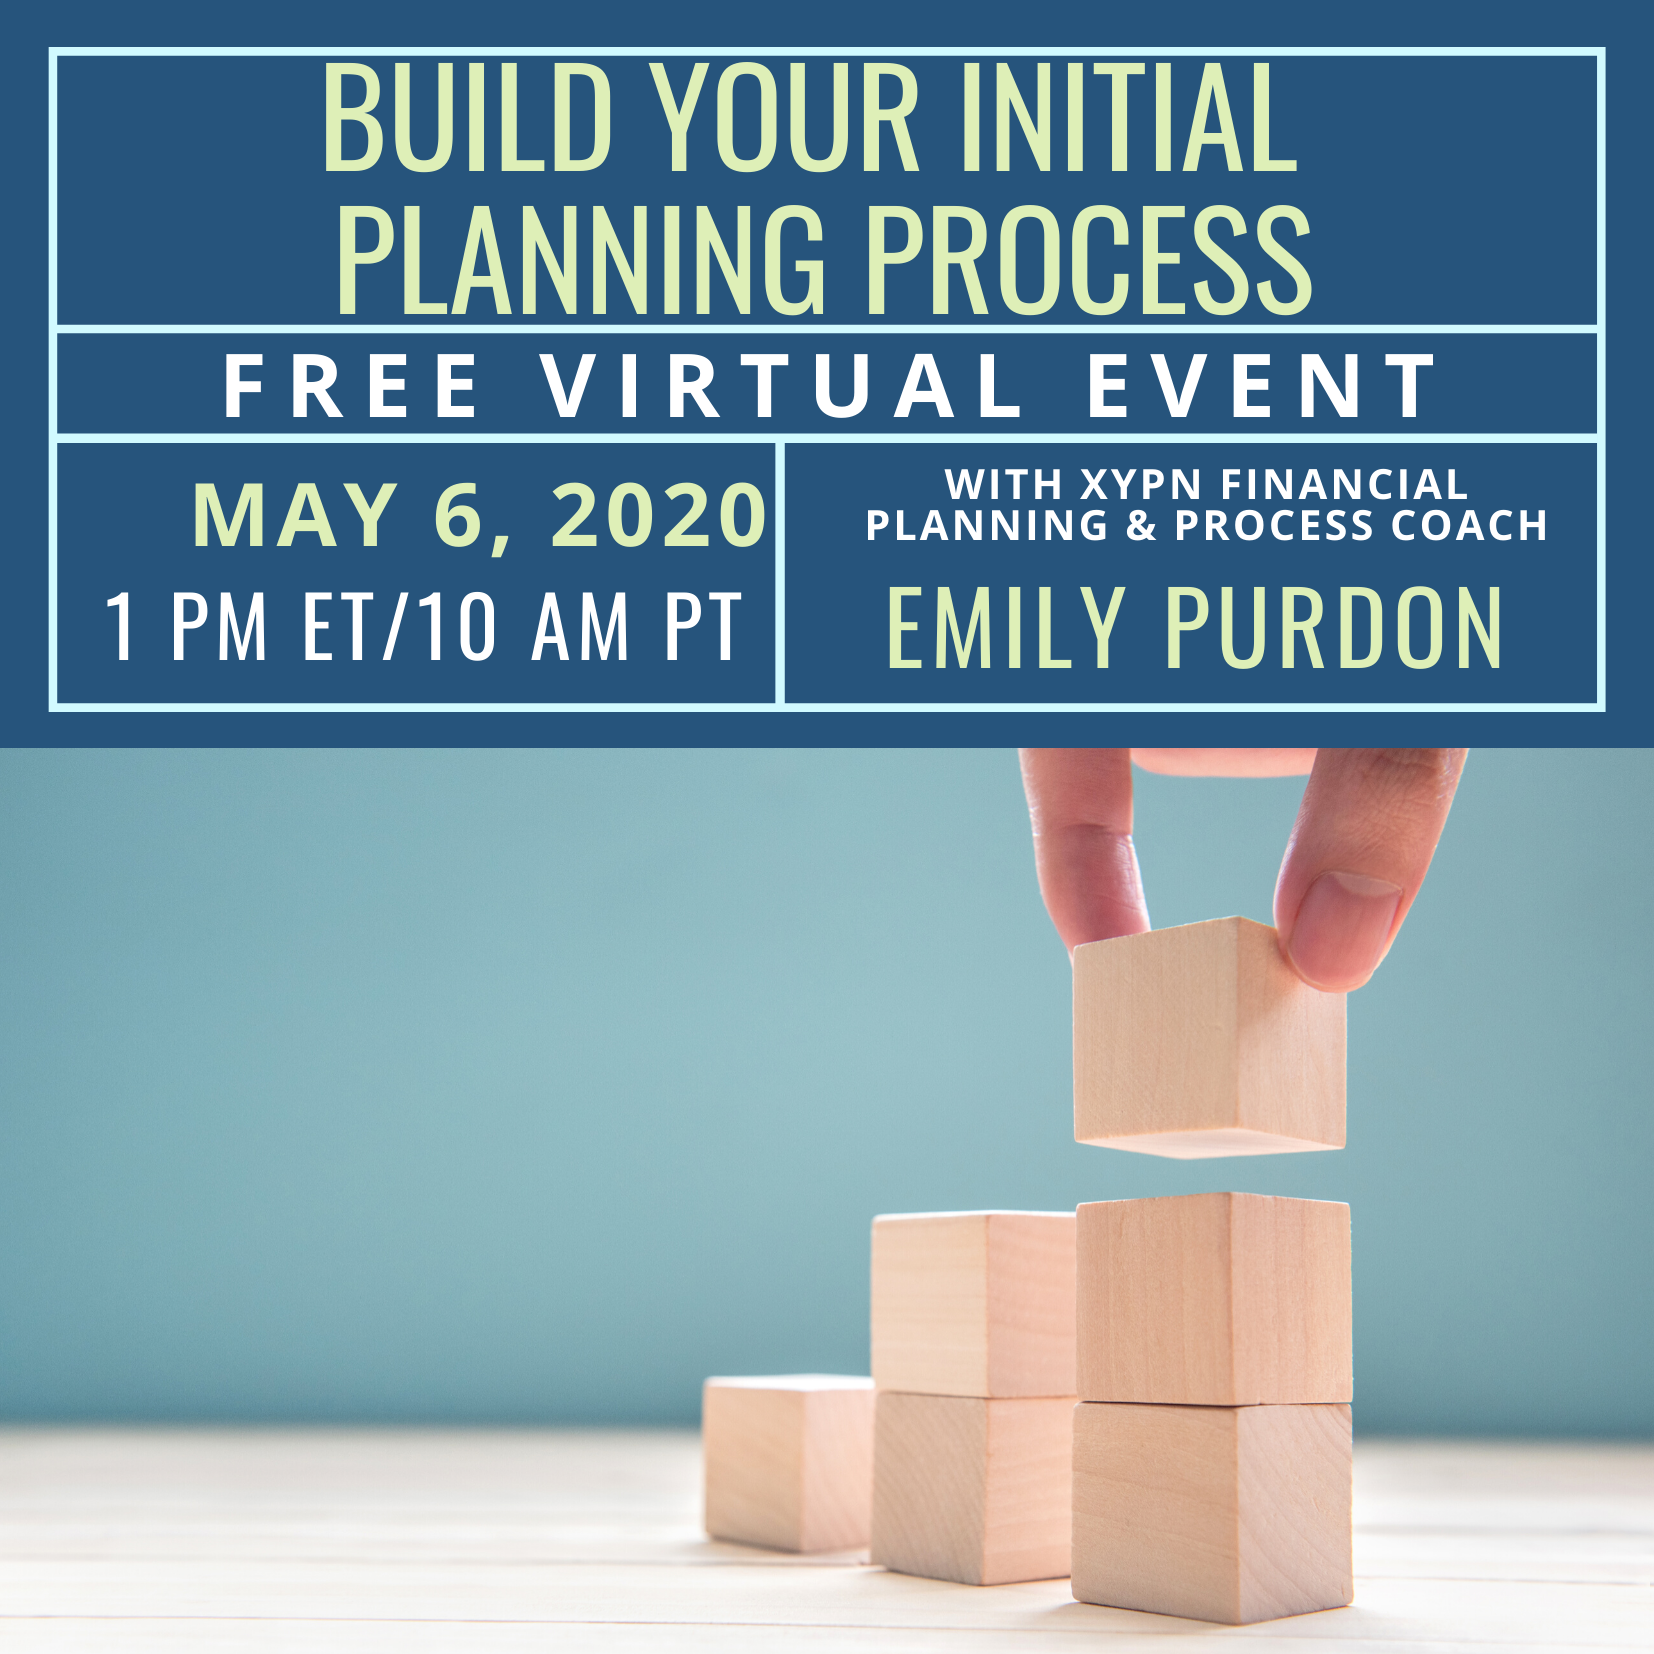 Free Virtual Event: Build Your Initial Planning Process